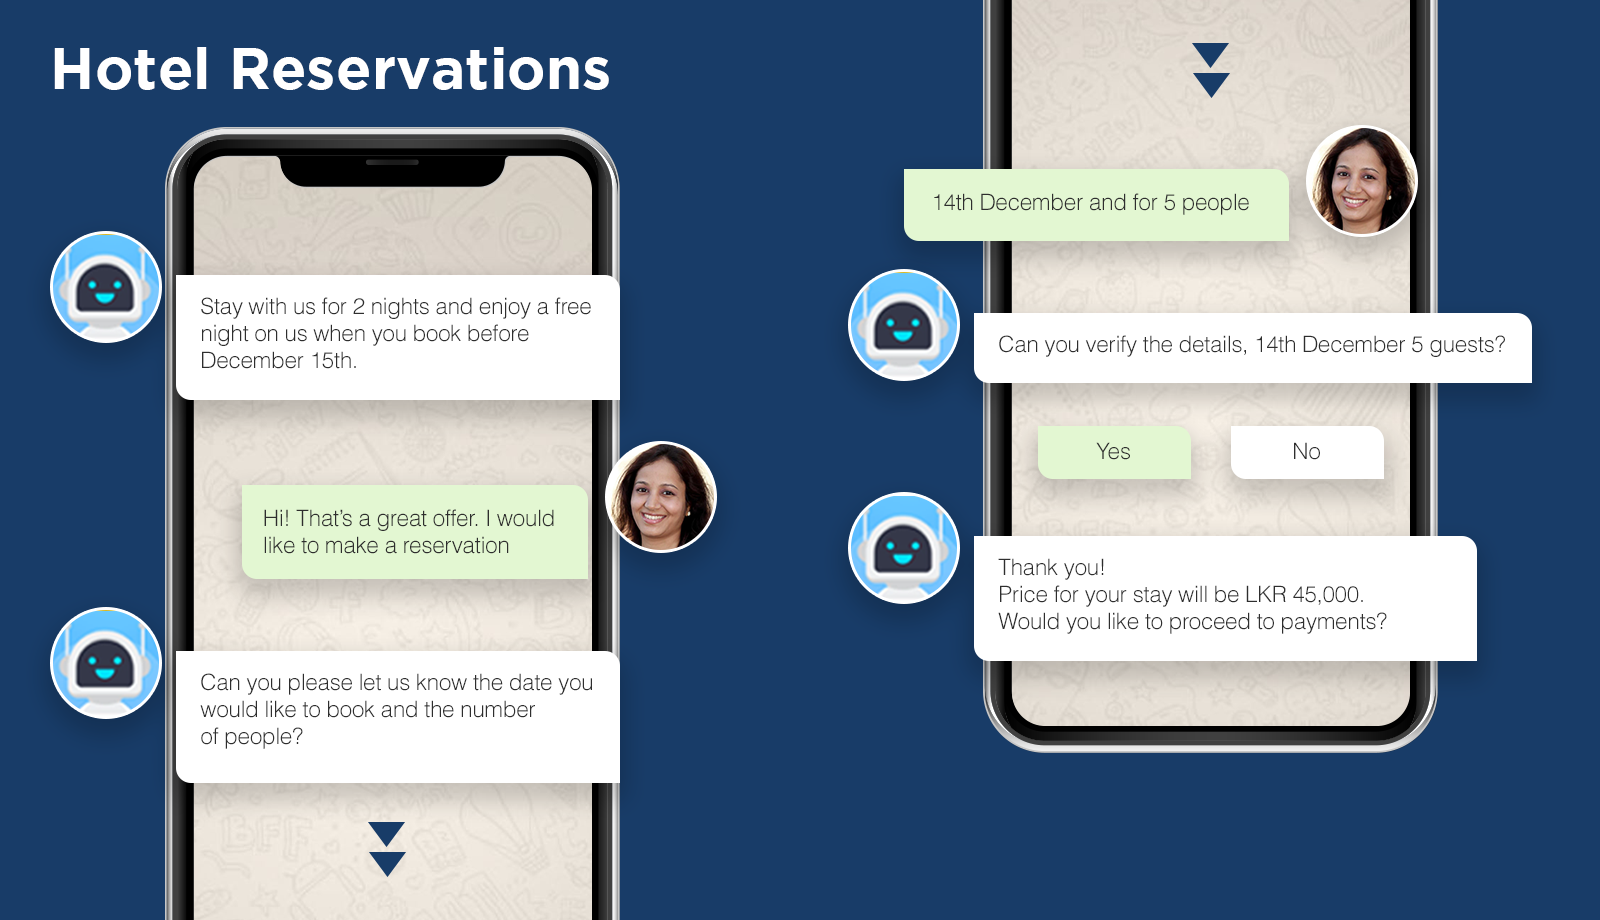 chatbot conversation on hotel reservation